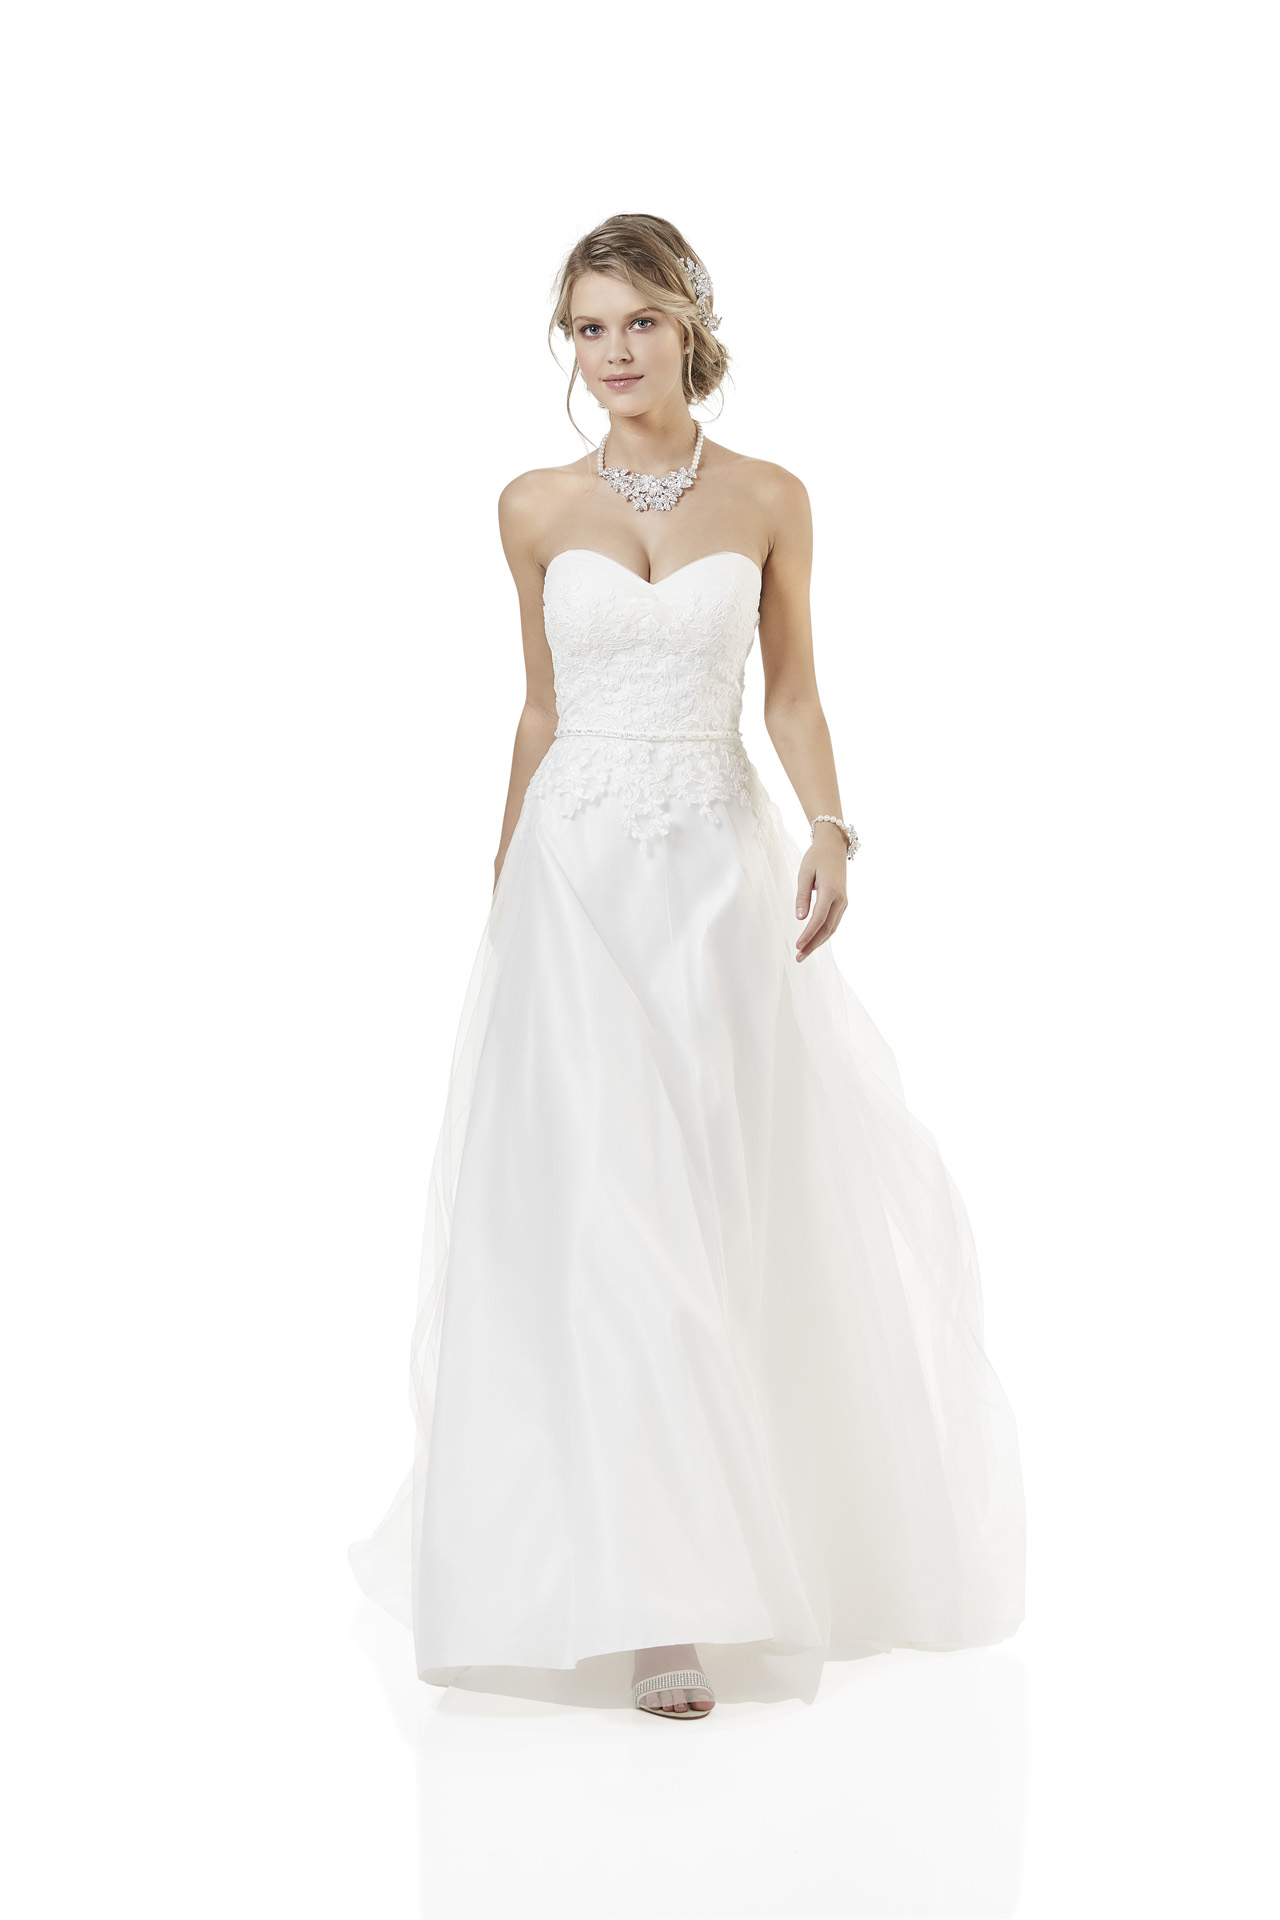 Brautkleid Weise Essentials Kollektion 2018 Modell 334462